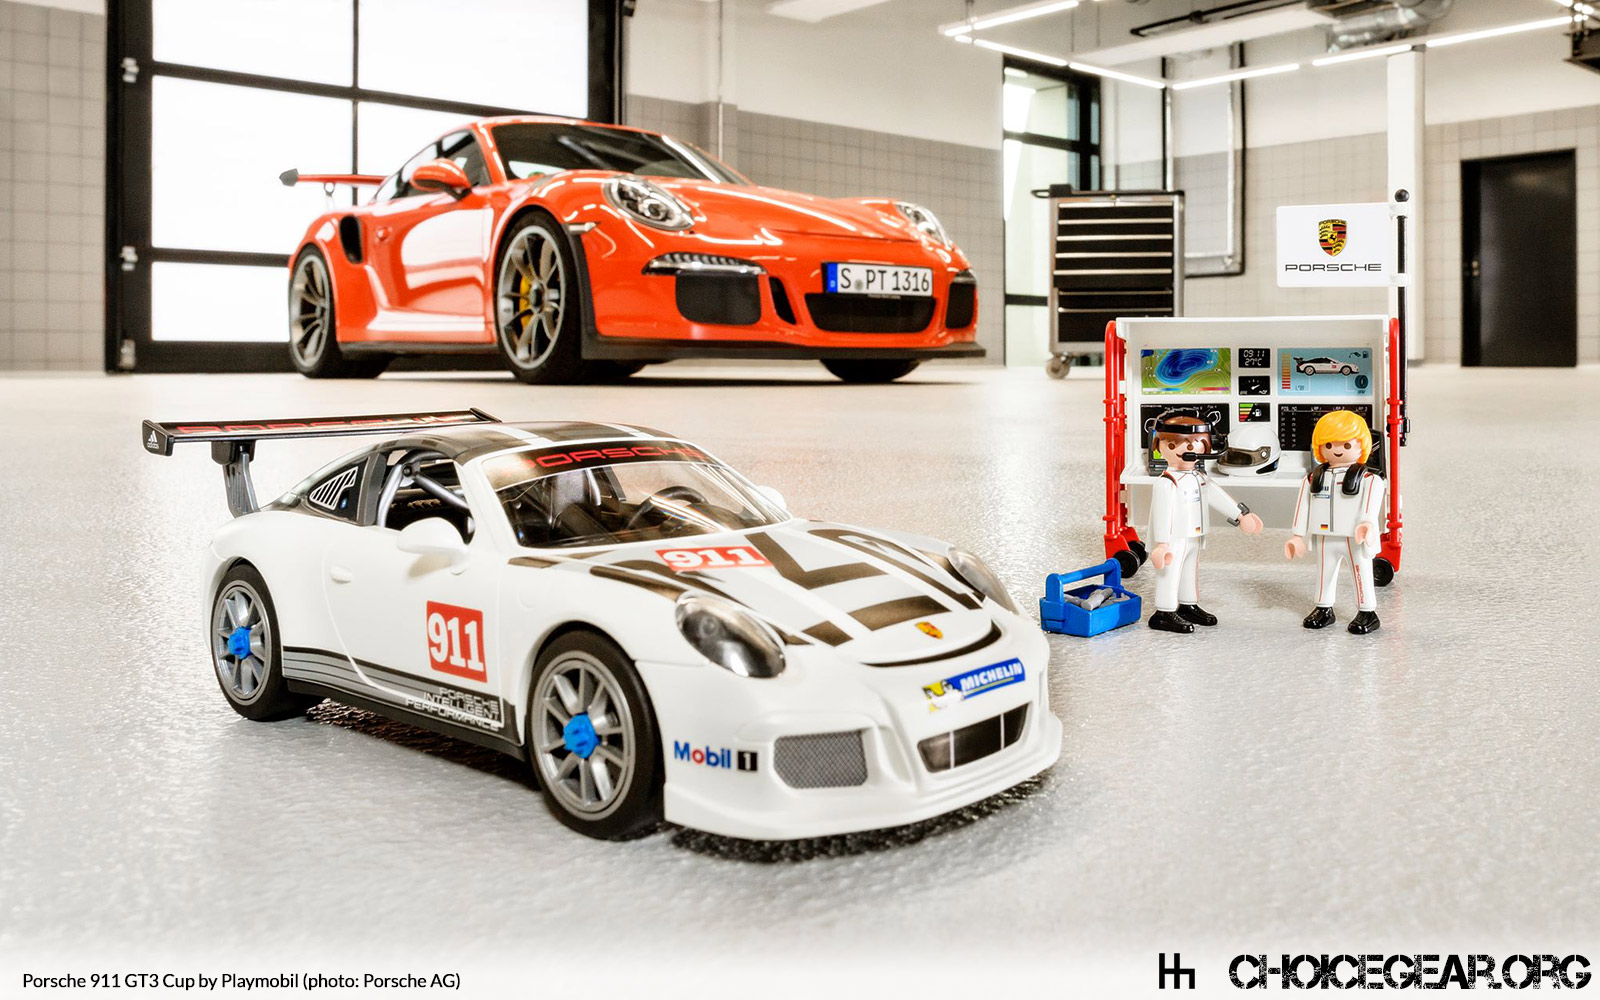 Playmobil Porsche 911 Gt3 Cup Choice Gear